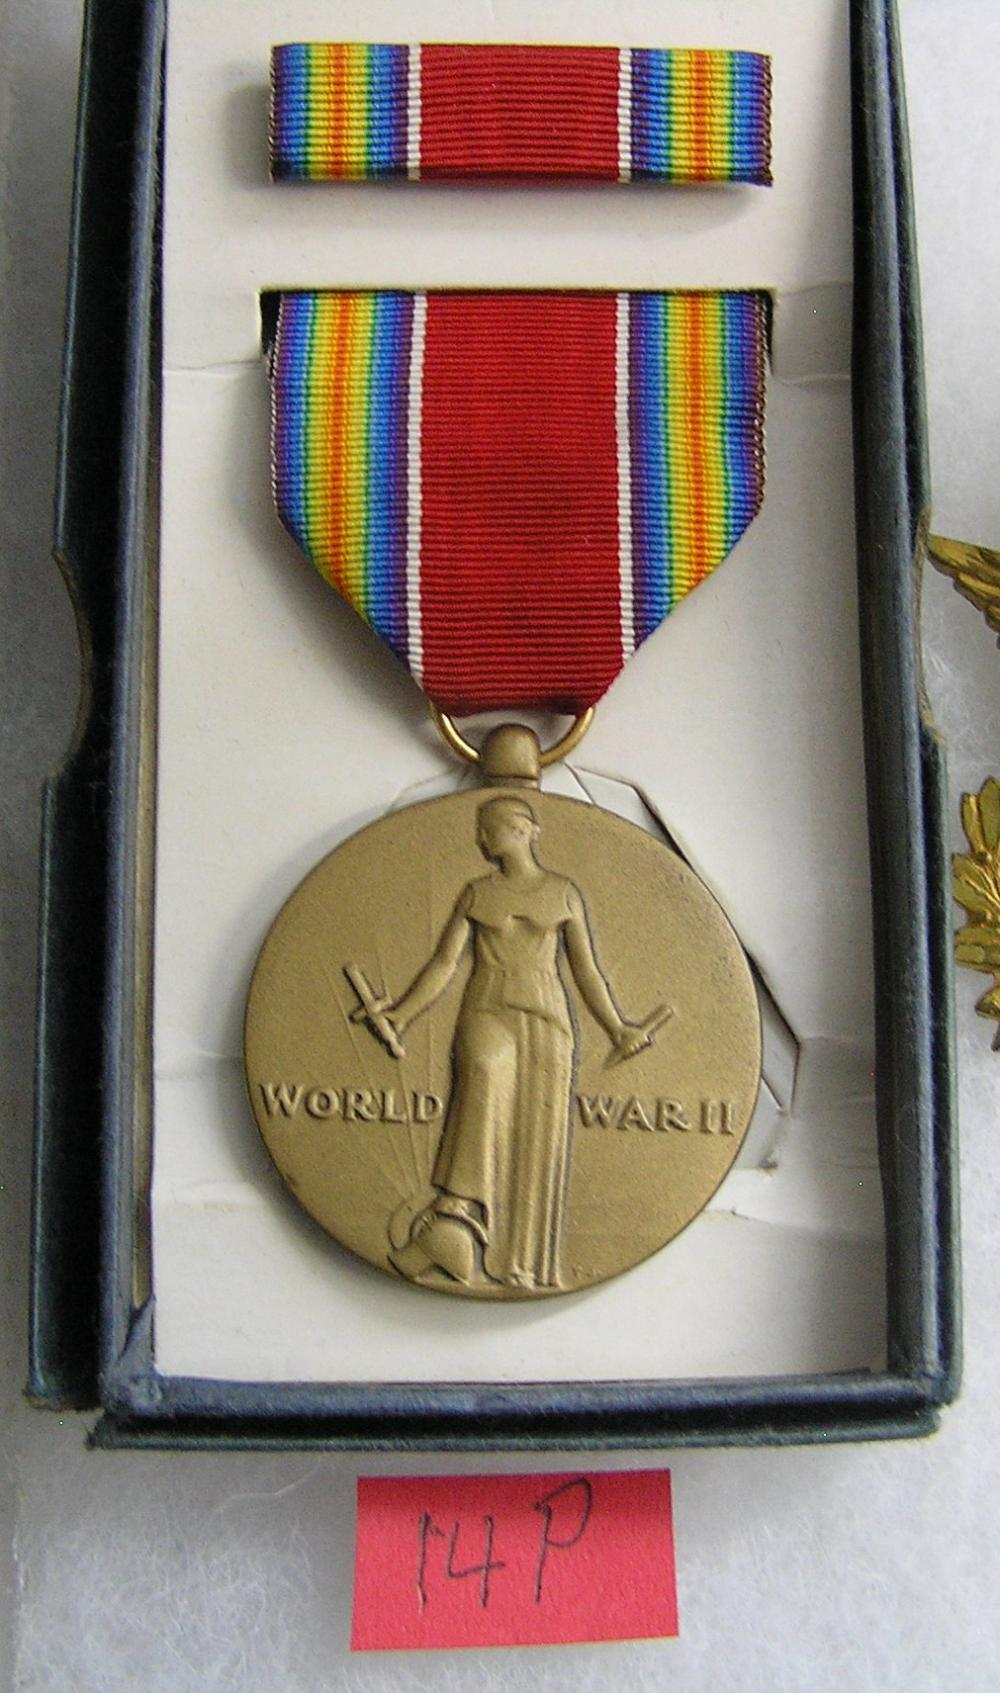 WWII Victory Medal with ribbon and bar in original box